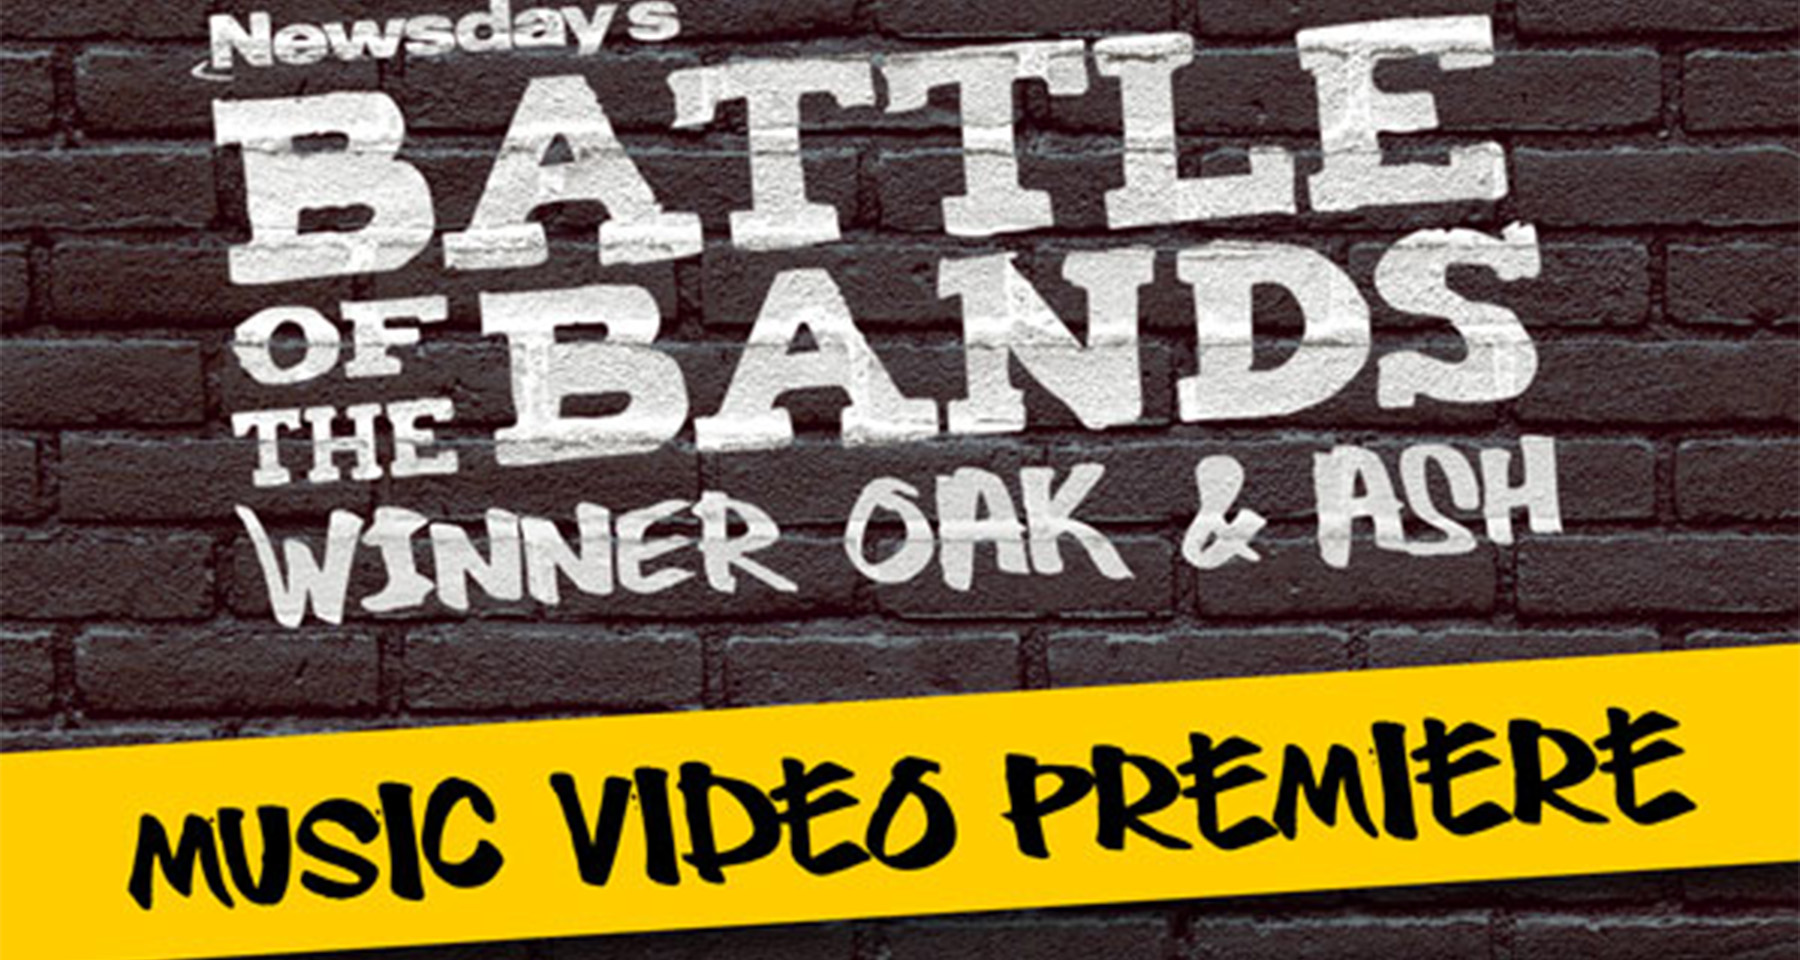 Newsday creates big buzz with Battle of the Bands contest